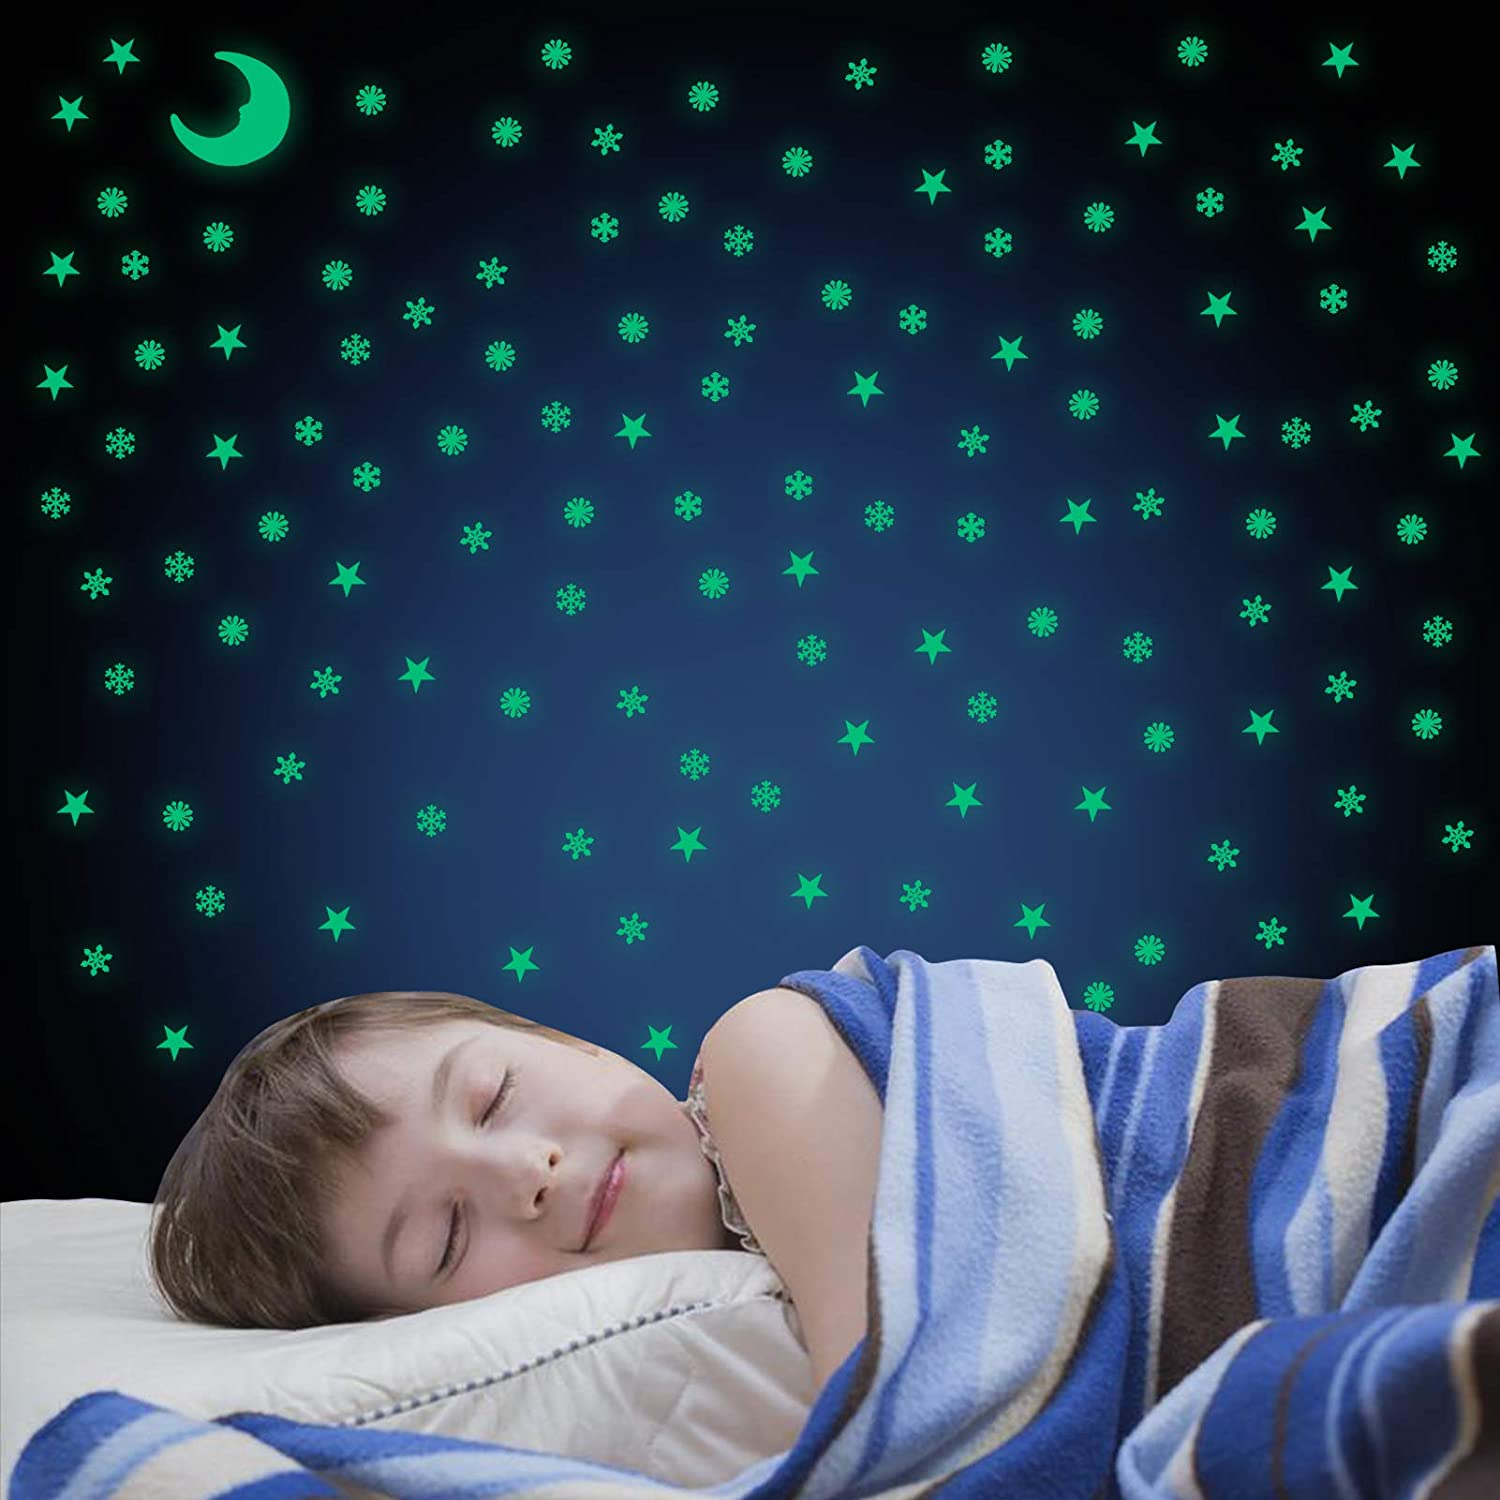 Glow in The Dark Stars for Ceiling, Glow in The Dark Stickers 201 PCS 3D Adhesive Glowing Moon Stars and Snowflake for Starry Sky Wall Stickers Decorations for Kids Bedroom